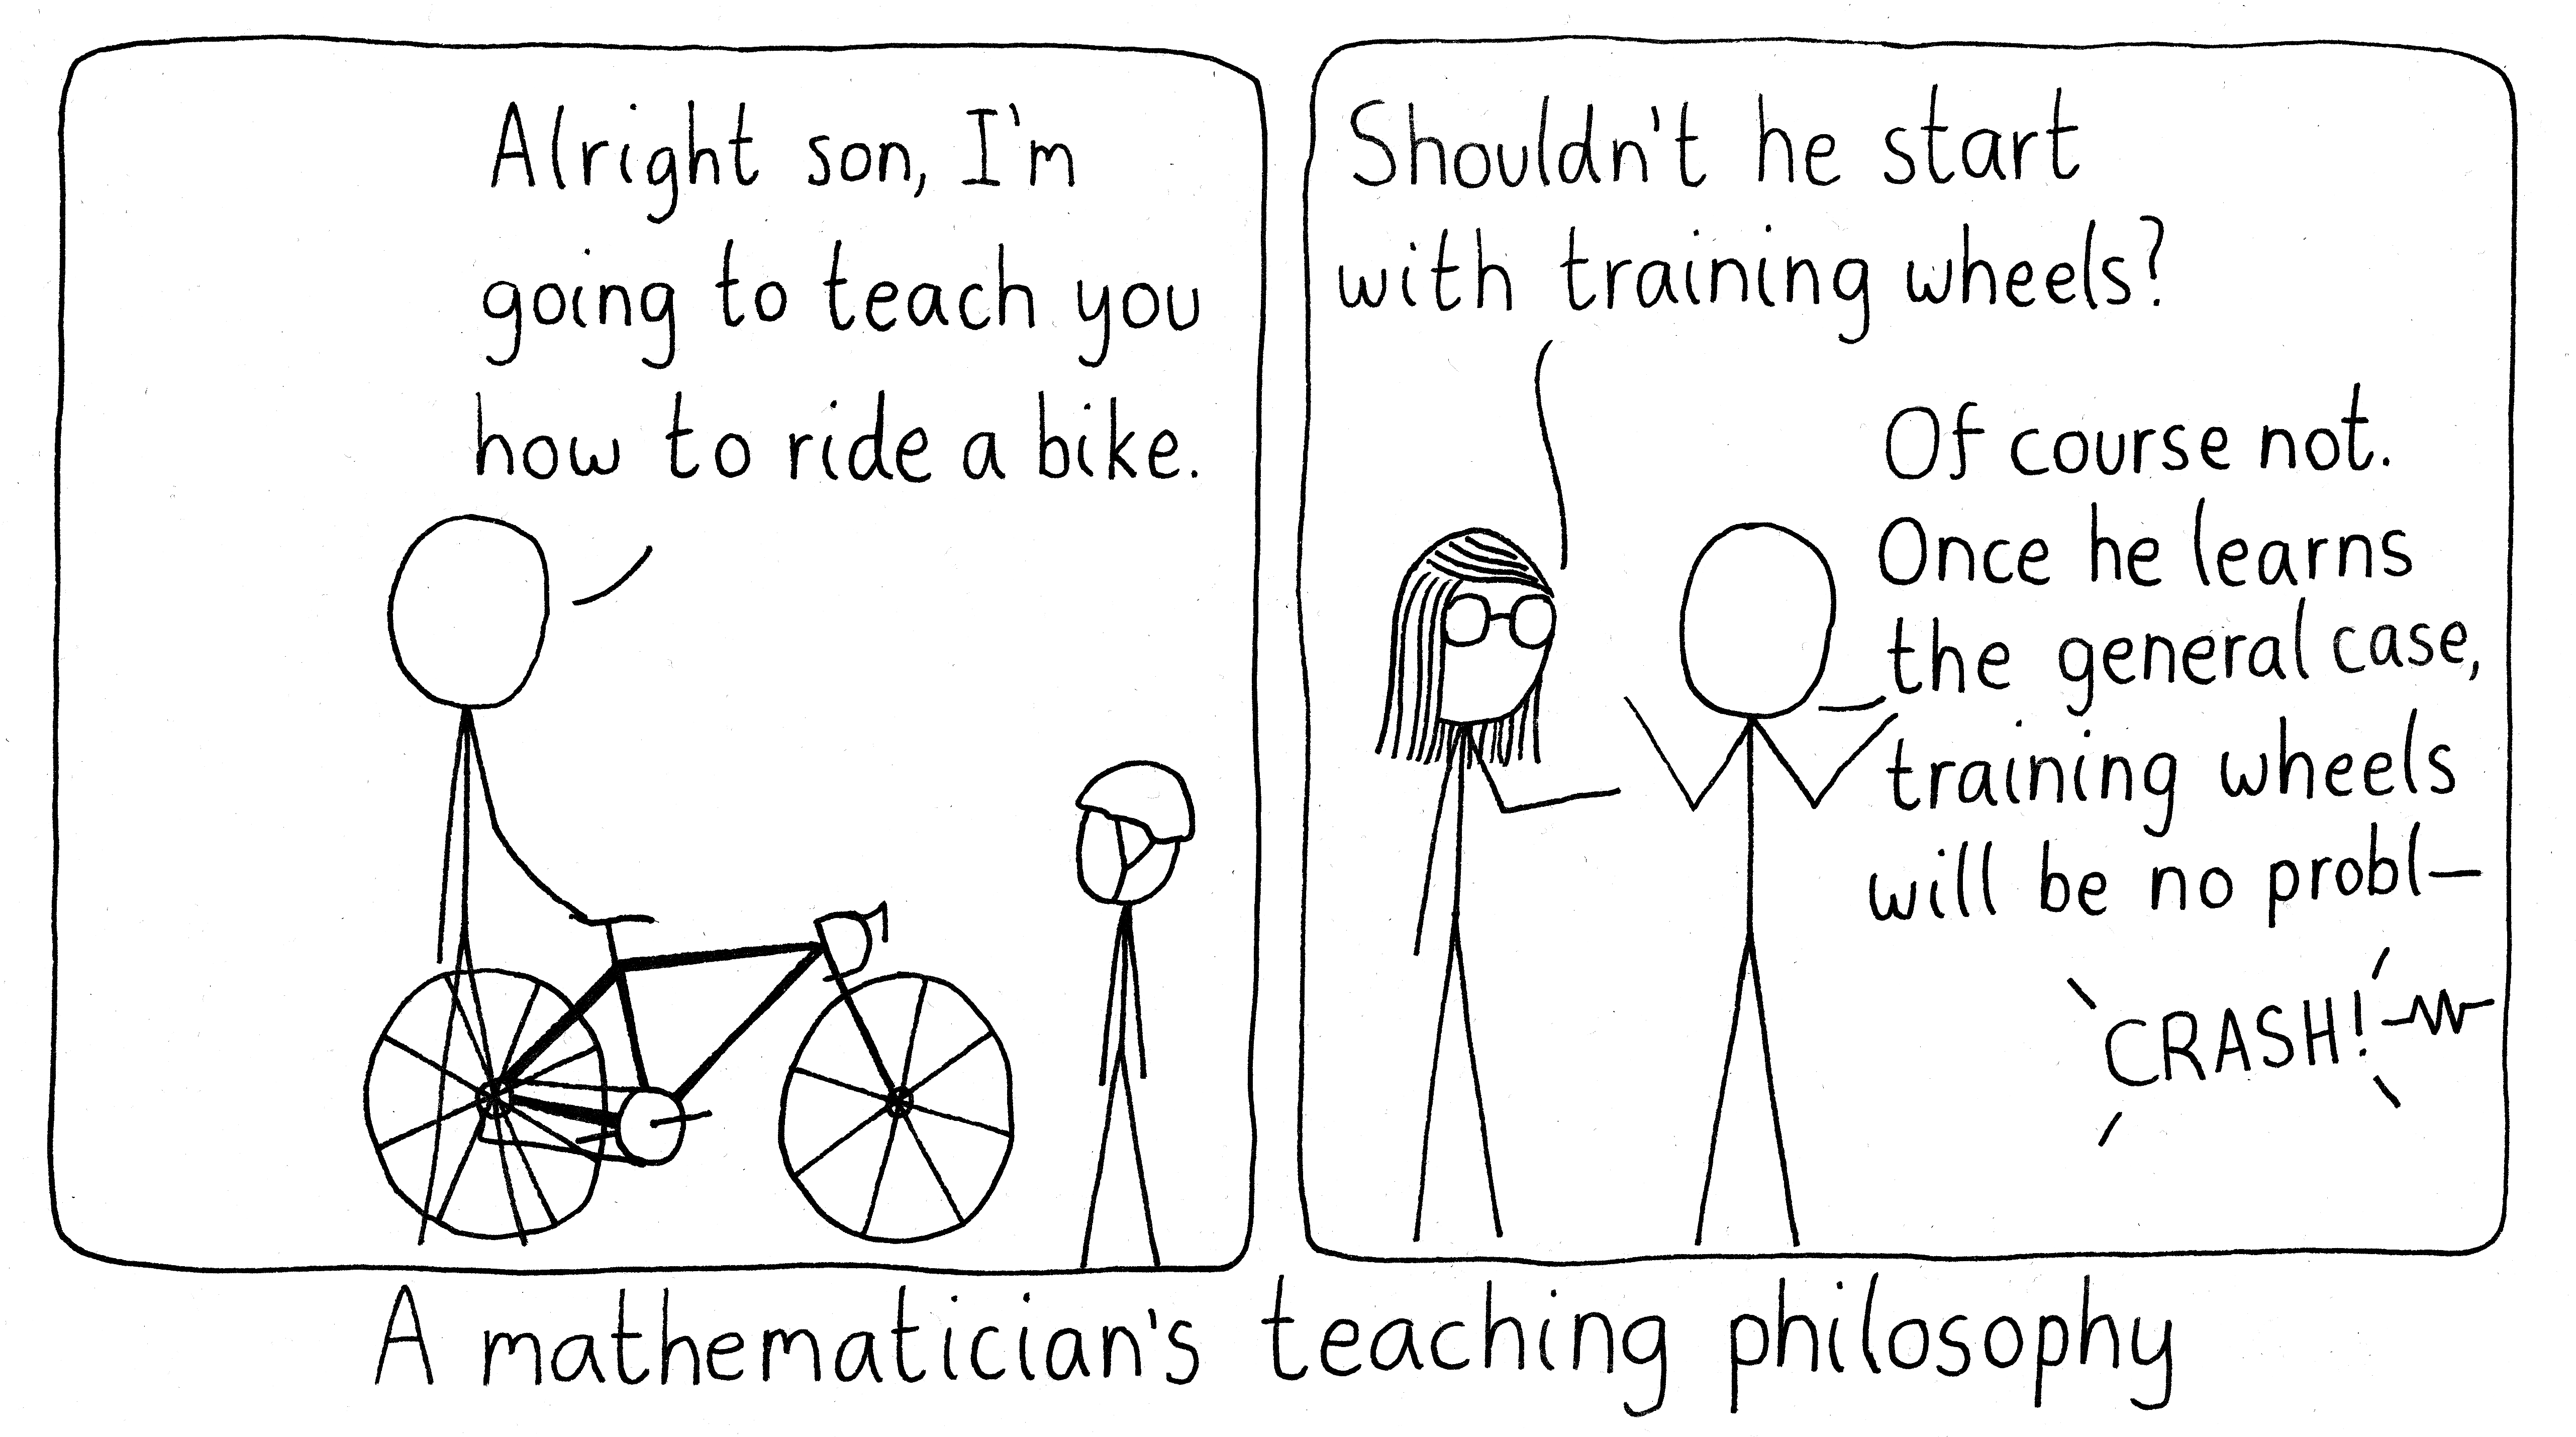 A mathematics professor tells their kid to ride their bicycle without training wheels because they might as well go straight to the general case.